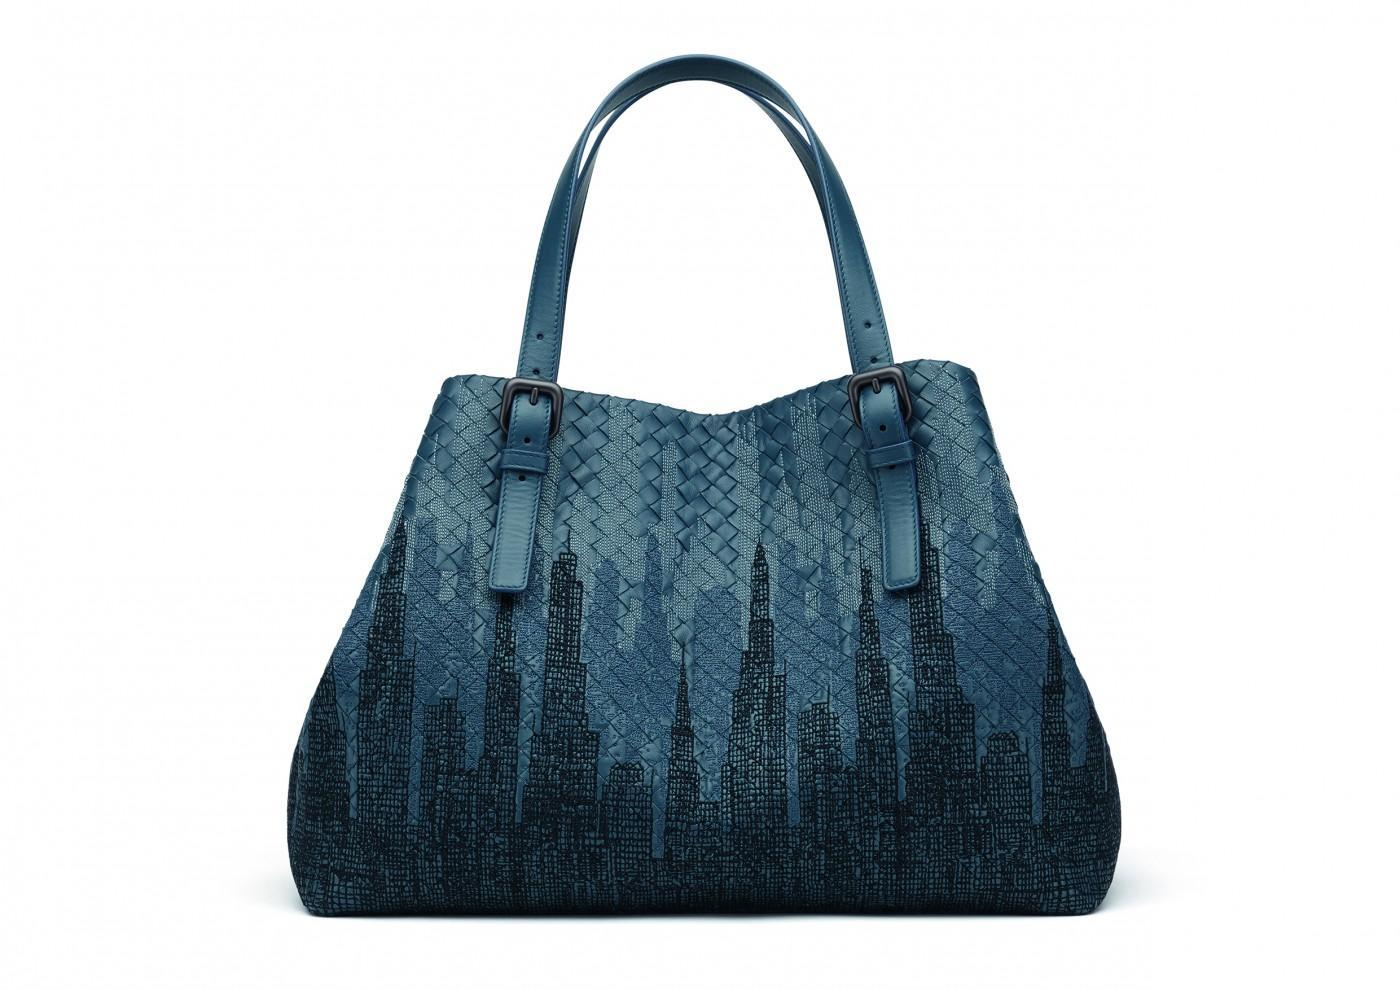 ... inspired by New York City s street grid. The bag uses a special inlay  leather work that s cut and pieced together by hand for a subtle  representation ... 602214e77e411